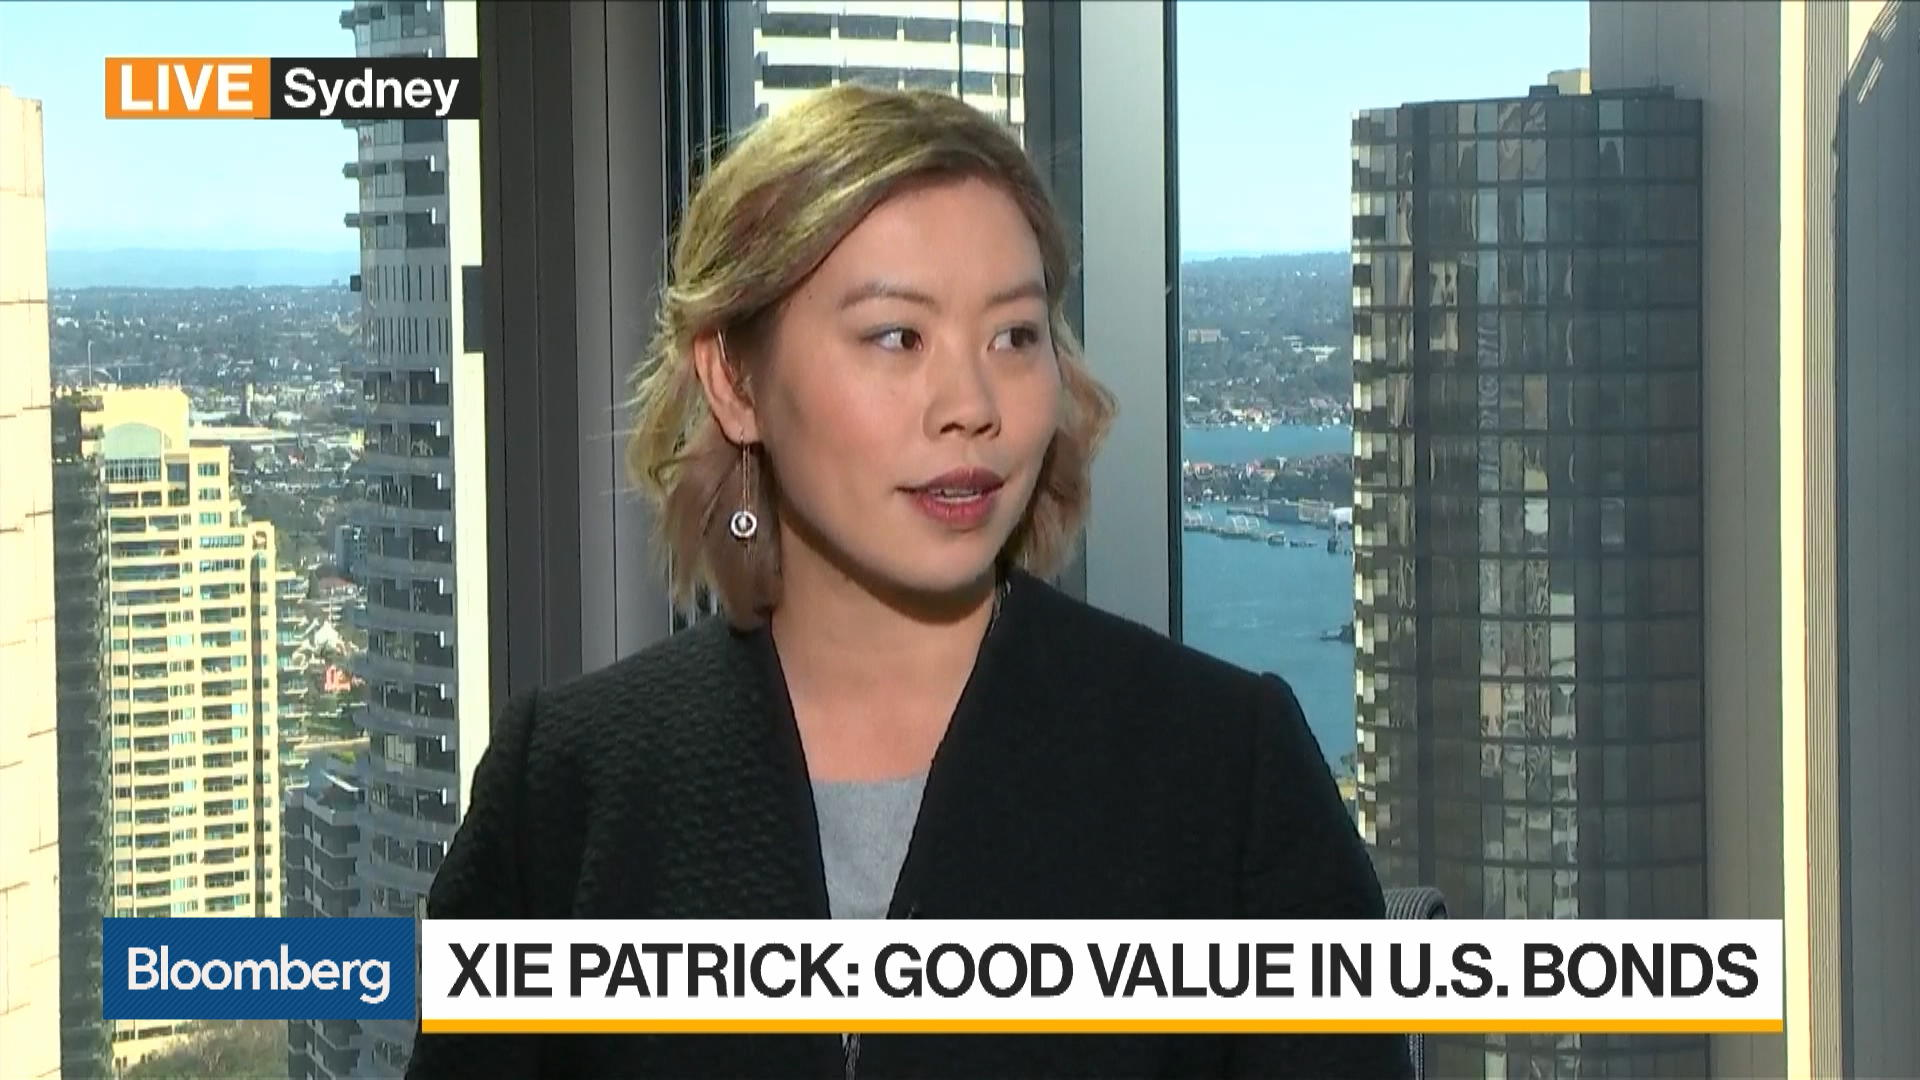 Amy Xie Patrick, portfolio manager at Pendal Group, on U.S. bonds, Fed